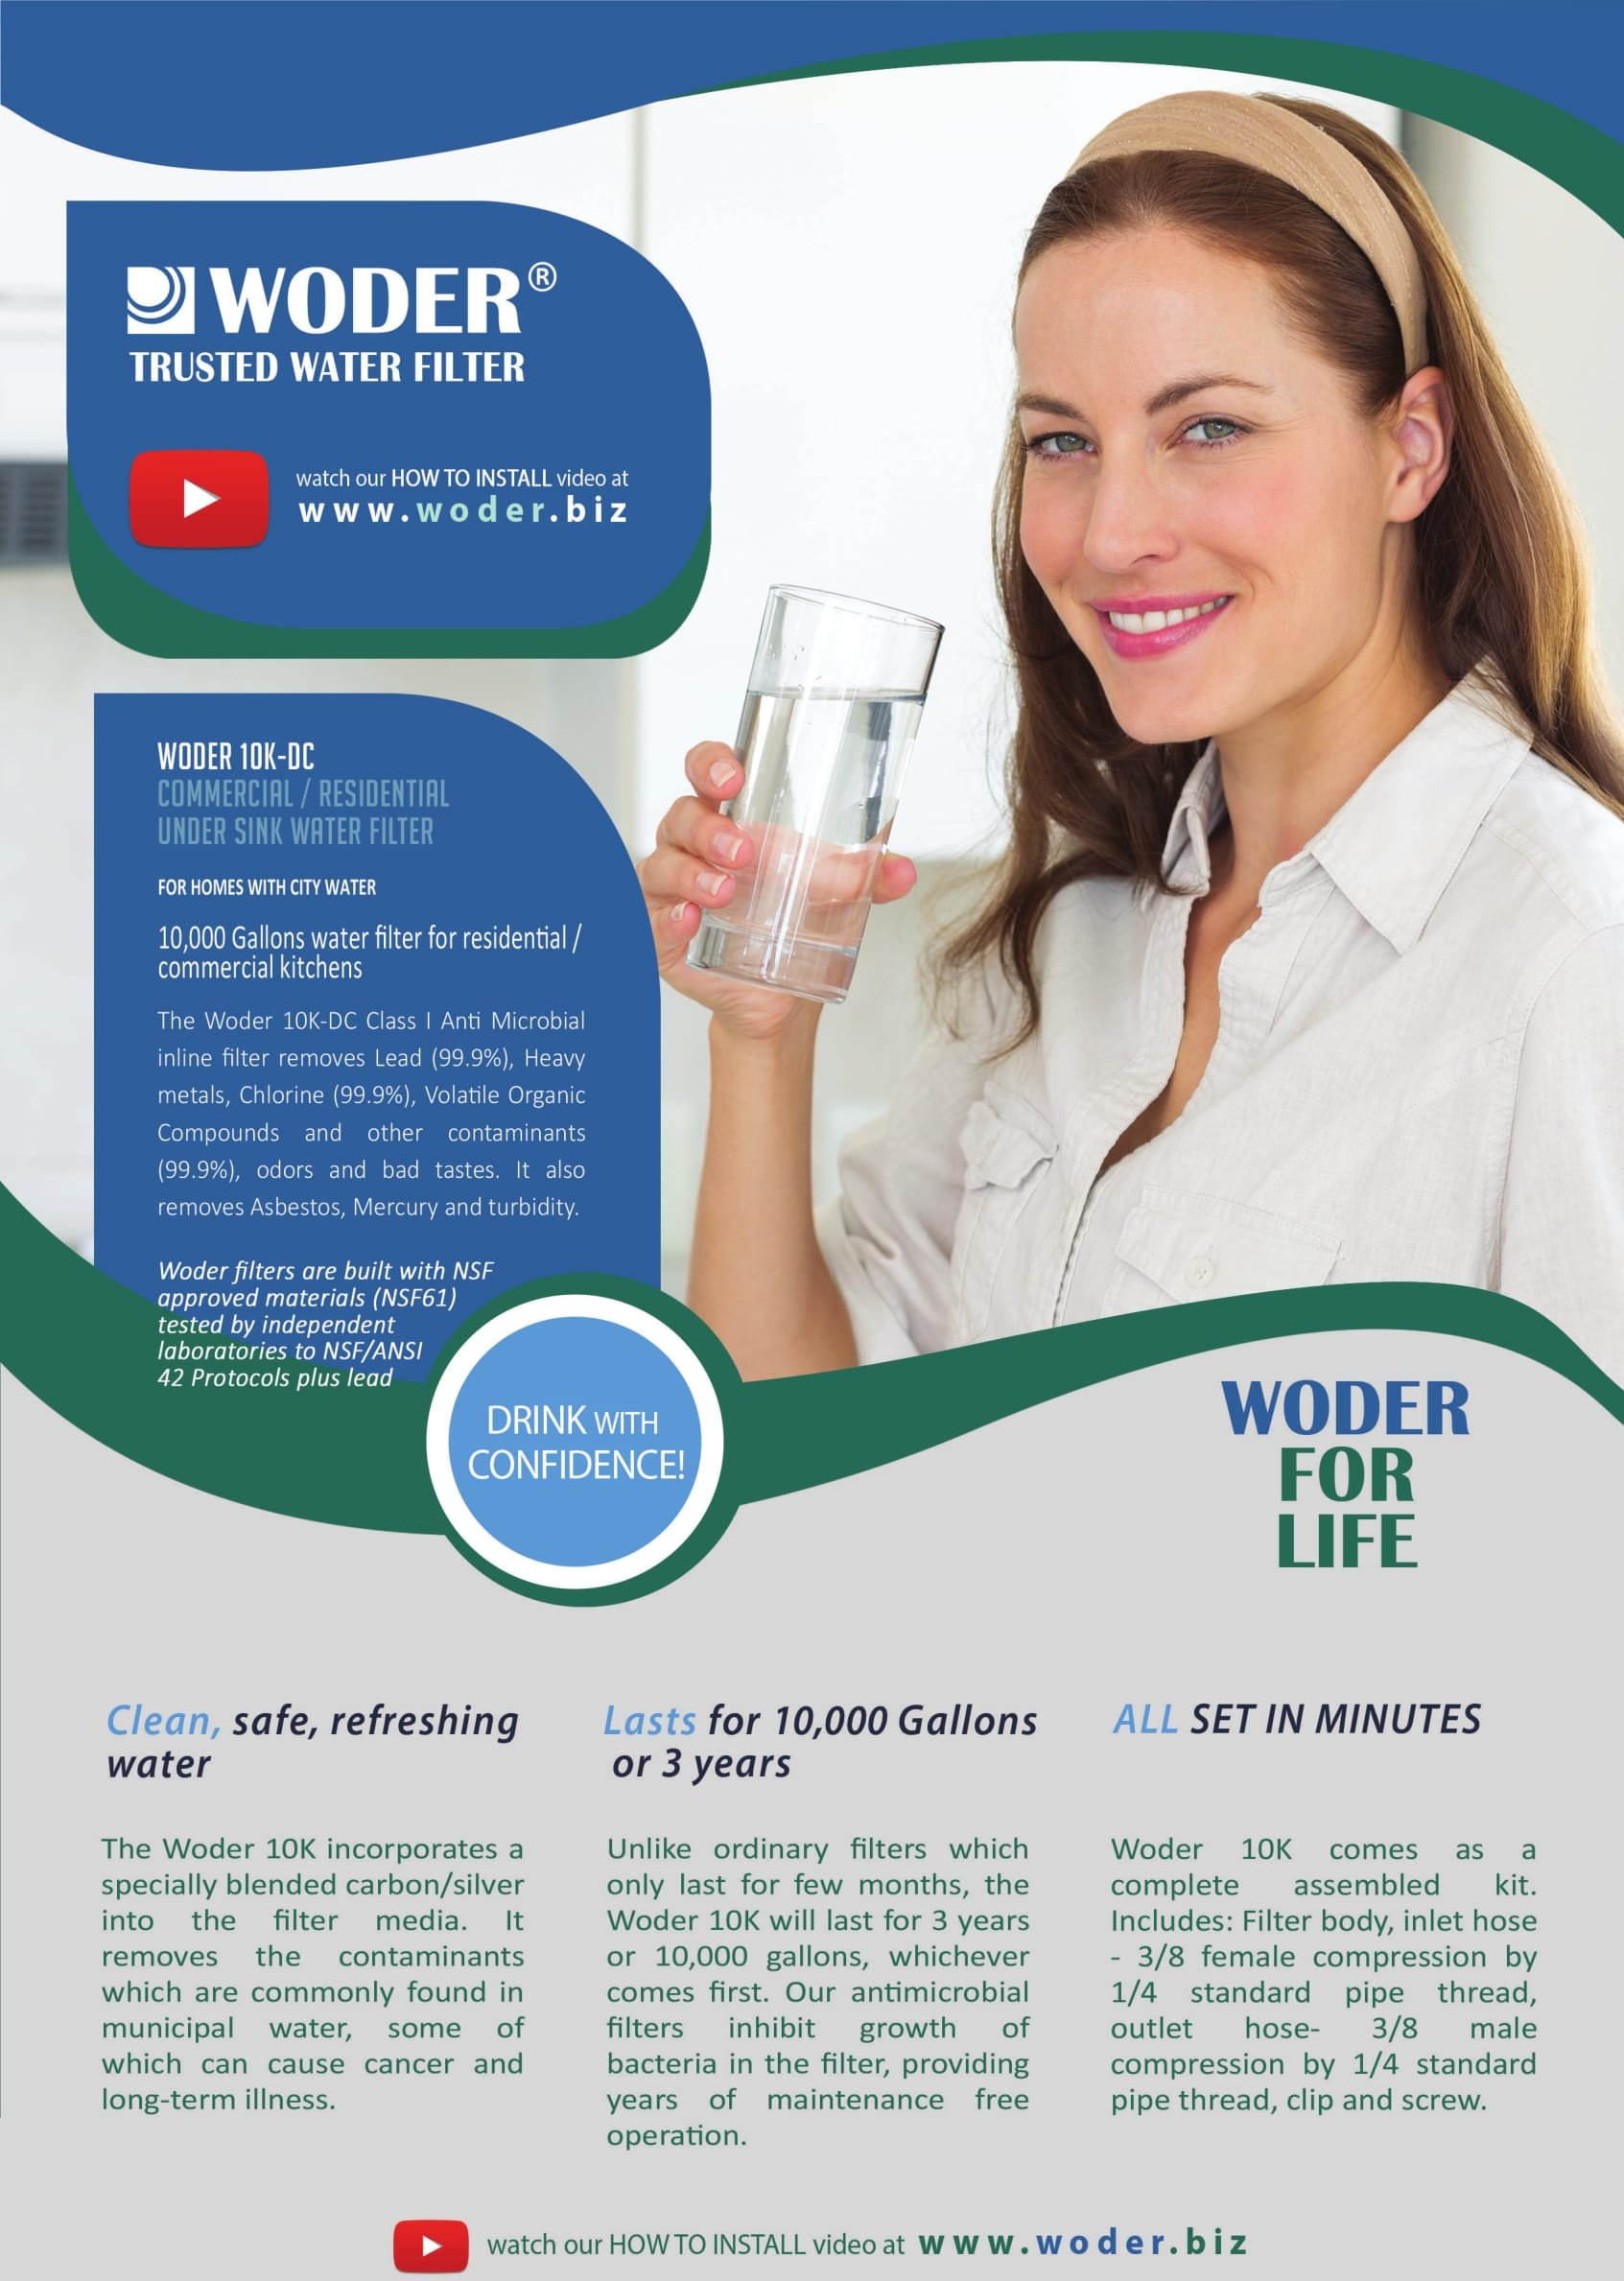 Woder 10K Ultra High Capacity Direct Connect Water Filtration System — Under Sink, Premium Class 1. Removes 99.99% of Contaminants for Safe, Fresh and Crisp Water, USA-Made by Woder (Image #5)